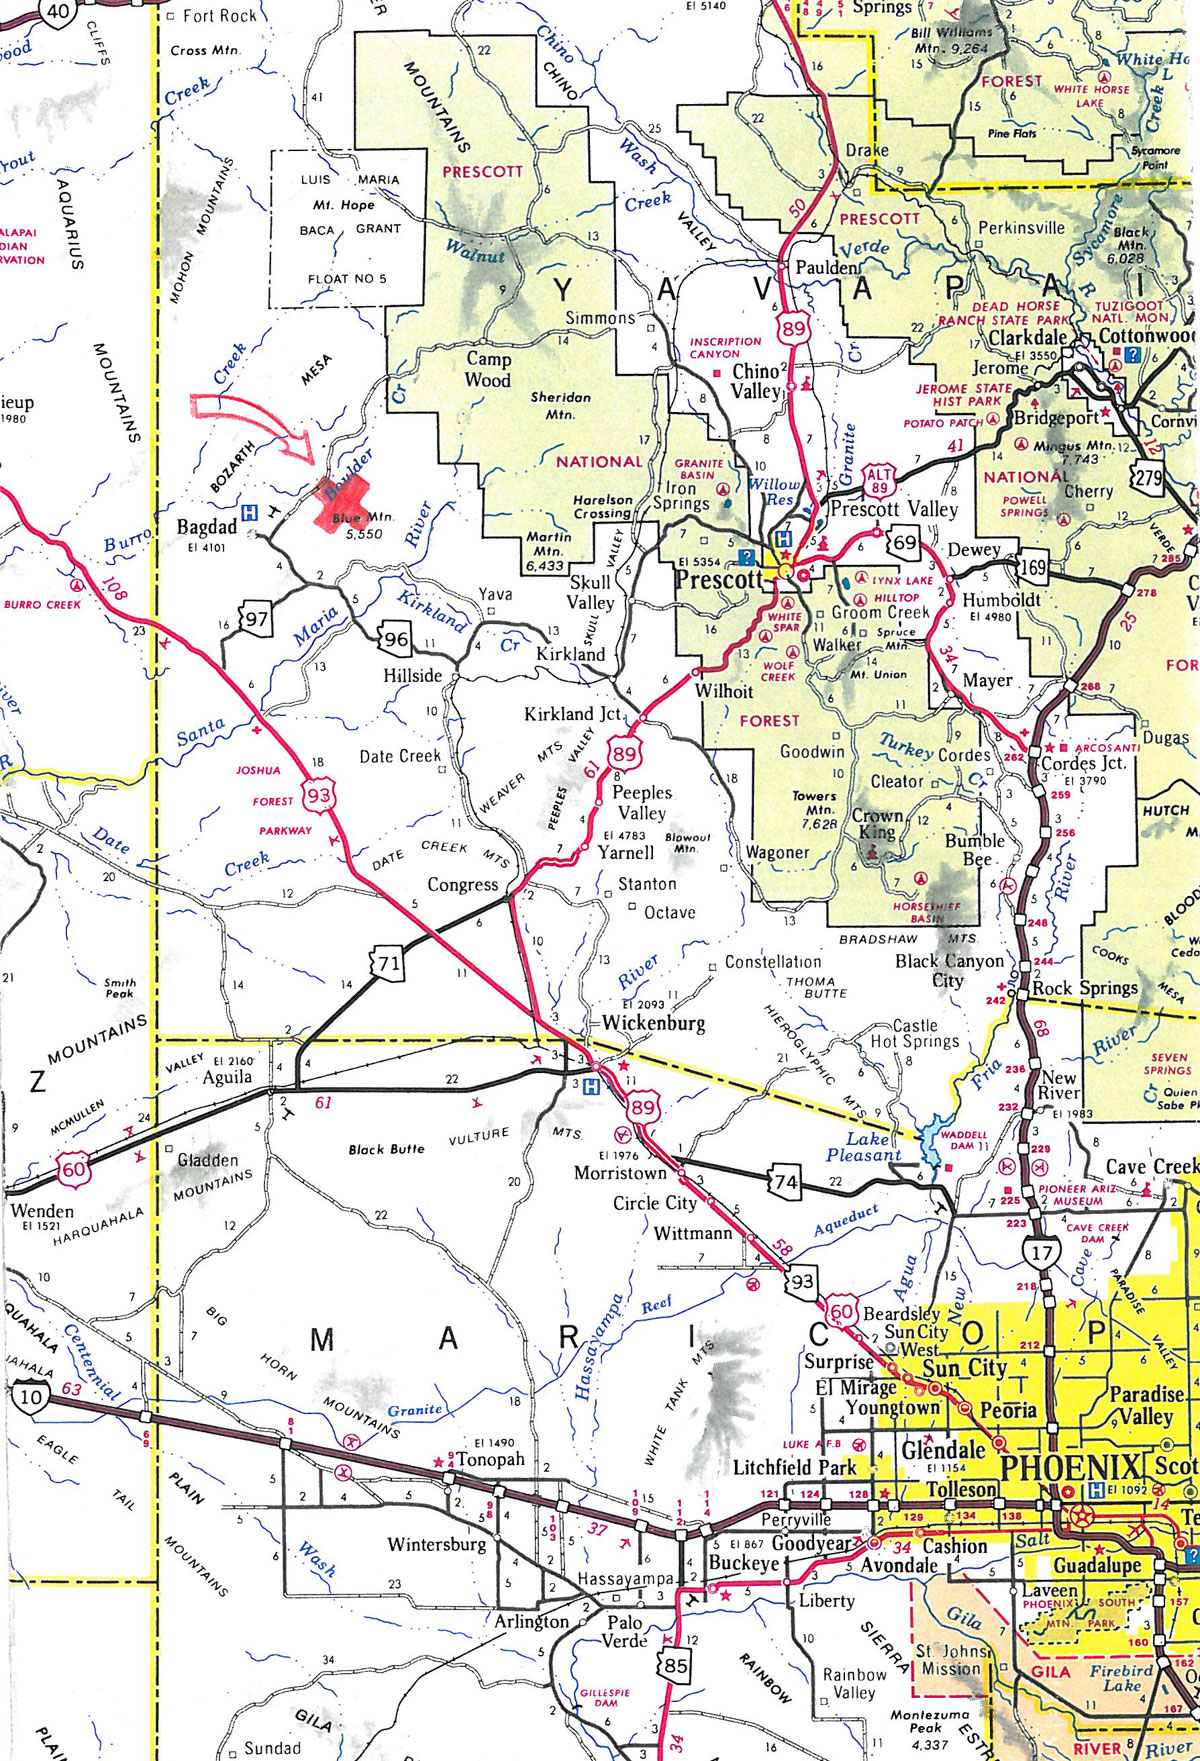 Camp Wood Az Elevation : Acres in yavapai county arizona